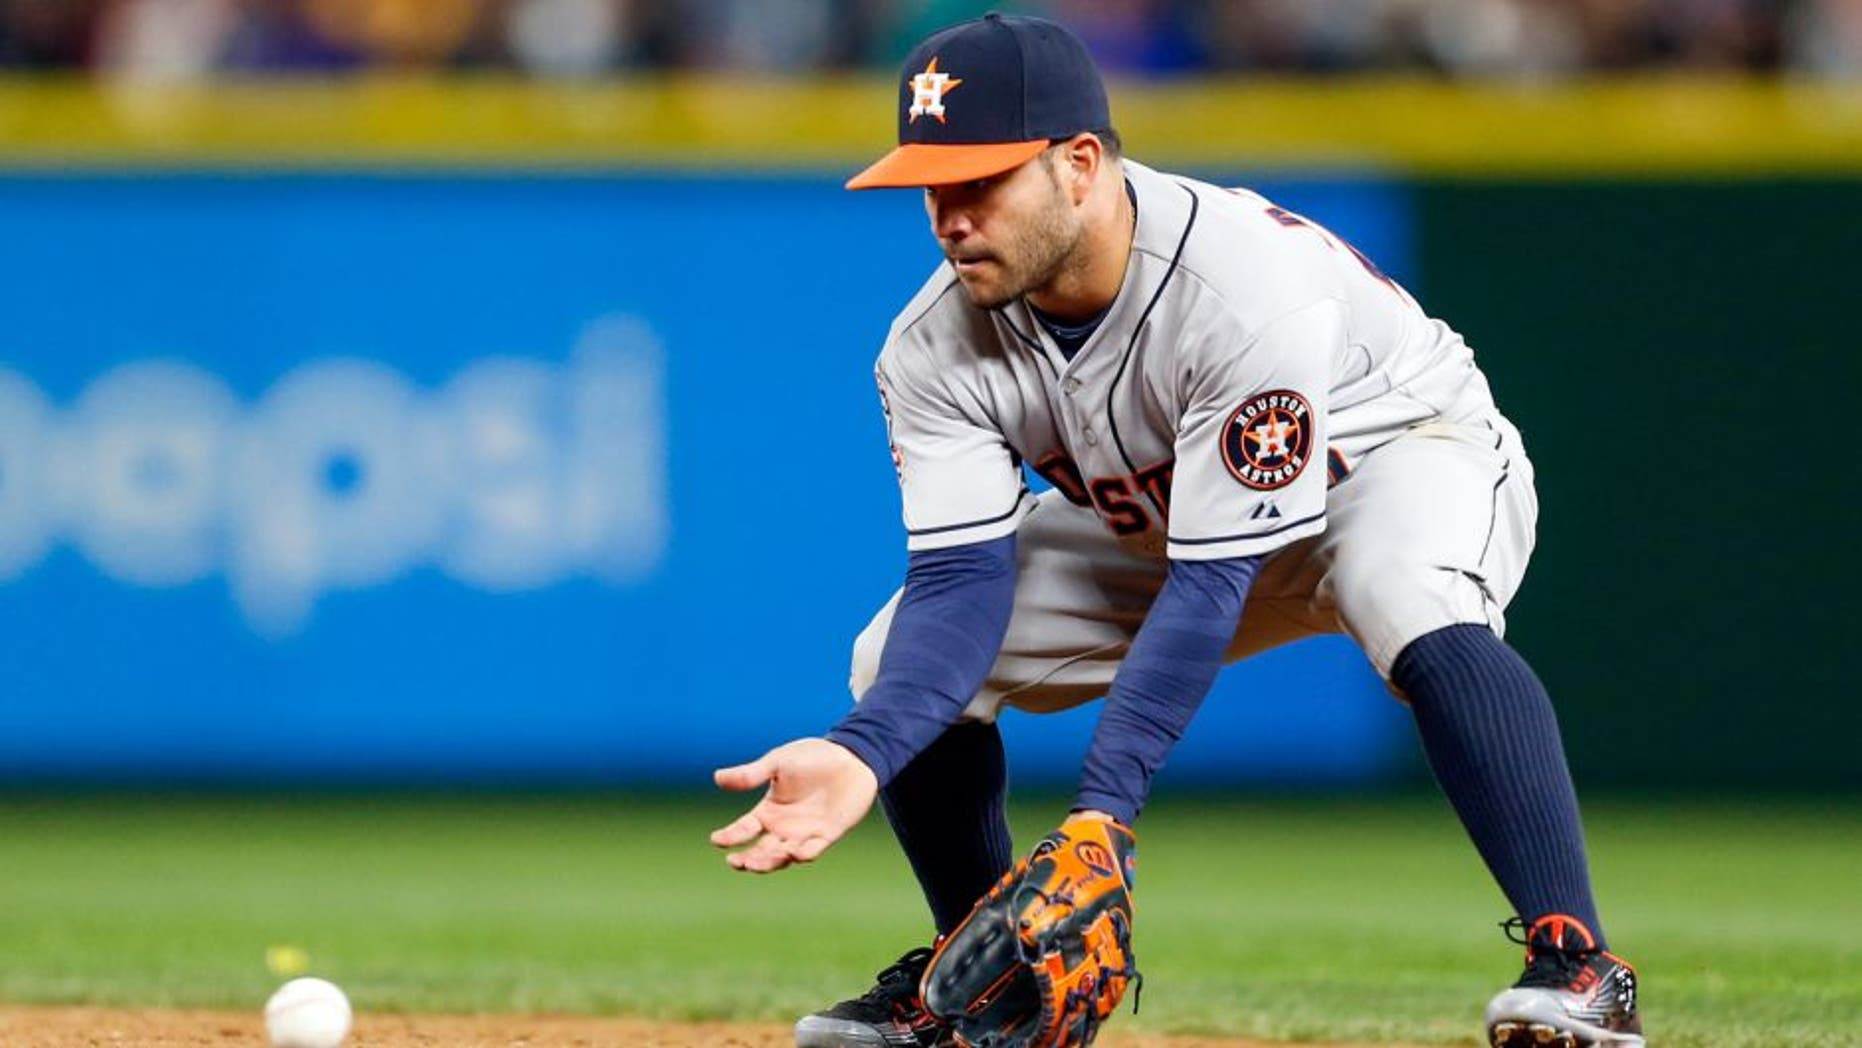 Apr 20, 2015; Seattle, WA, USA; Houston Astros second baseman Jose Altuve (27) fields a grounder against the Seattle Mariners during the eighth inning at Safeco Field. Houston defeated Seattle, 7-5. Mandatory Credit: Joe Nicholson-USA TODAY Sports